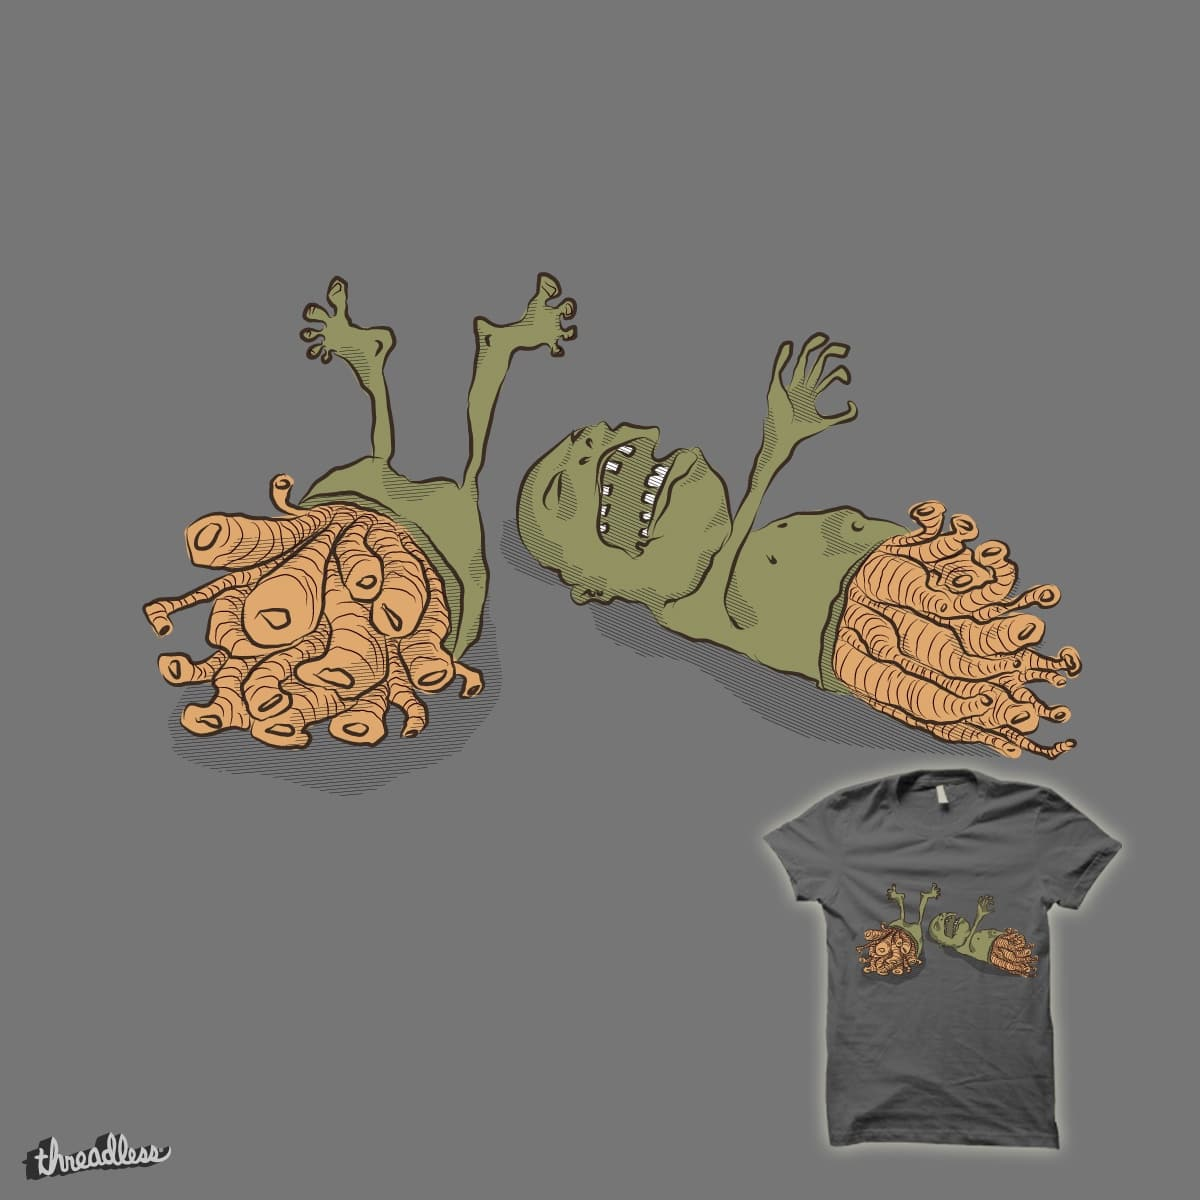 Better half by nathaliomorales on Threadless